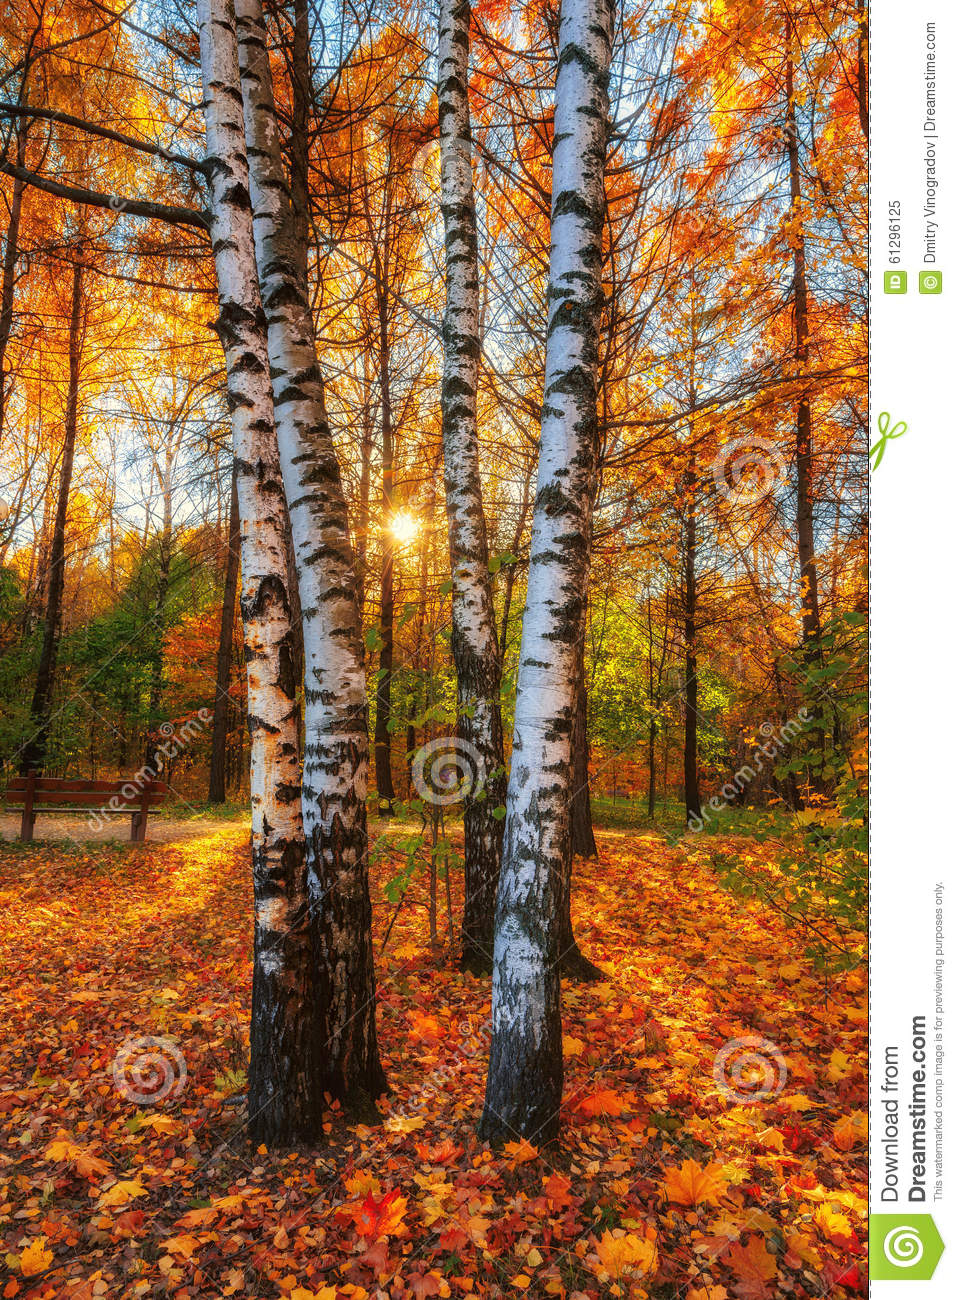 Beautiful Autumn Sunset: Beautiful Autumn Morning In The Park With Soft Golden